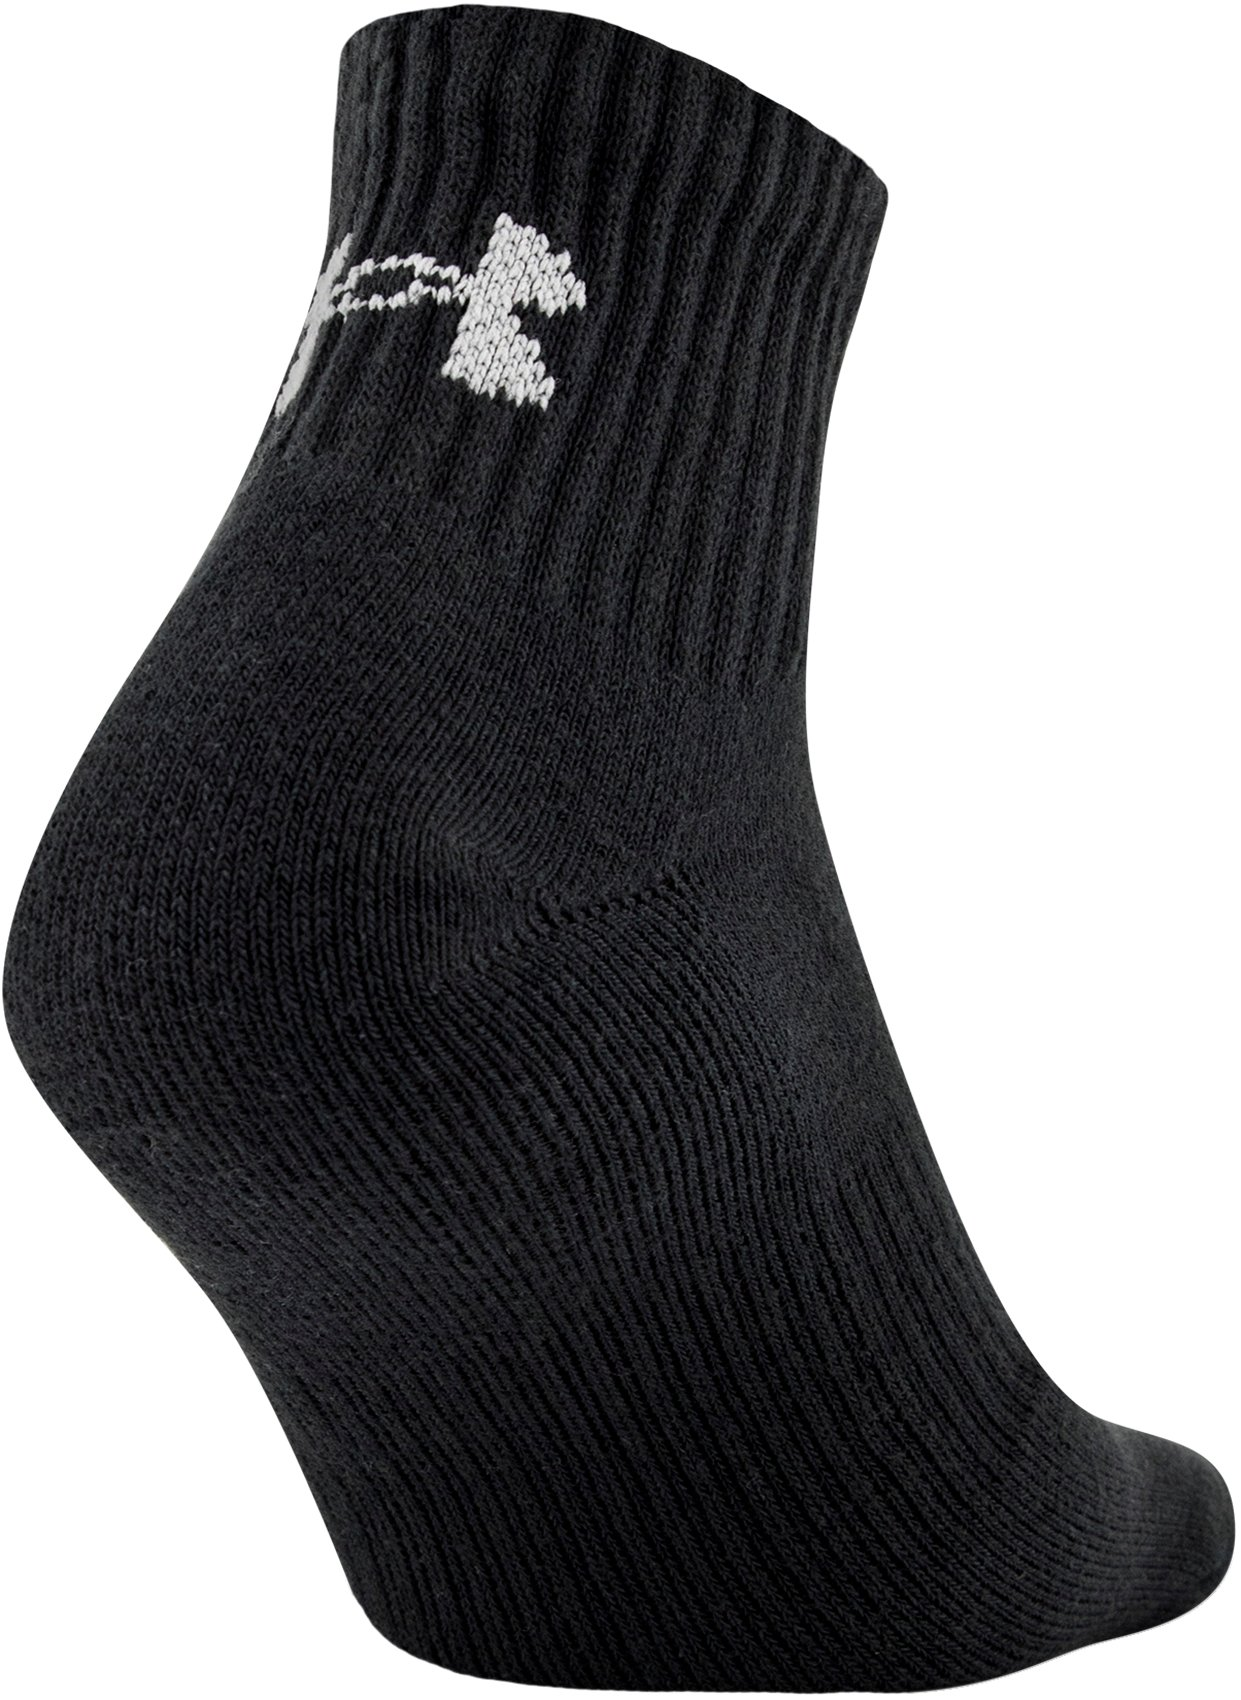 UA Charged Cotton® 2.0 Quarter Length Socks – 6-Pack, Black ,